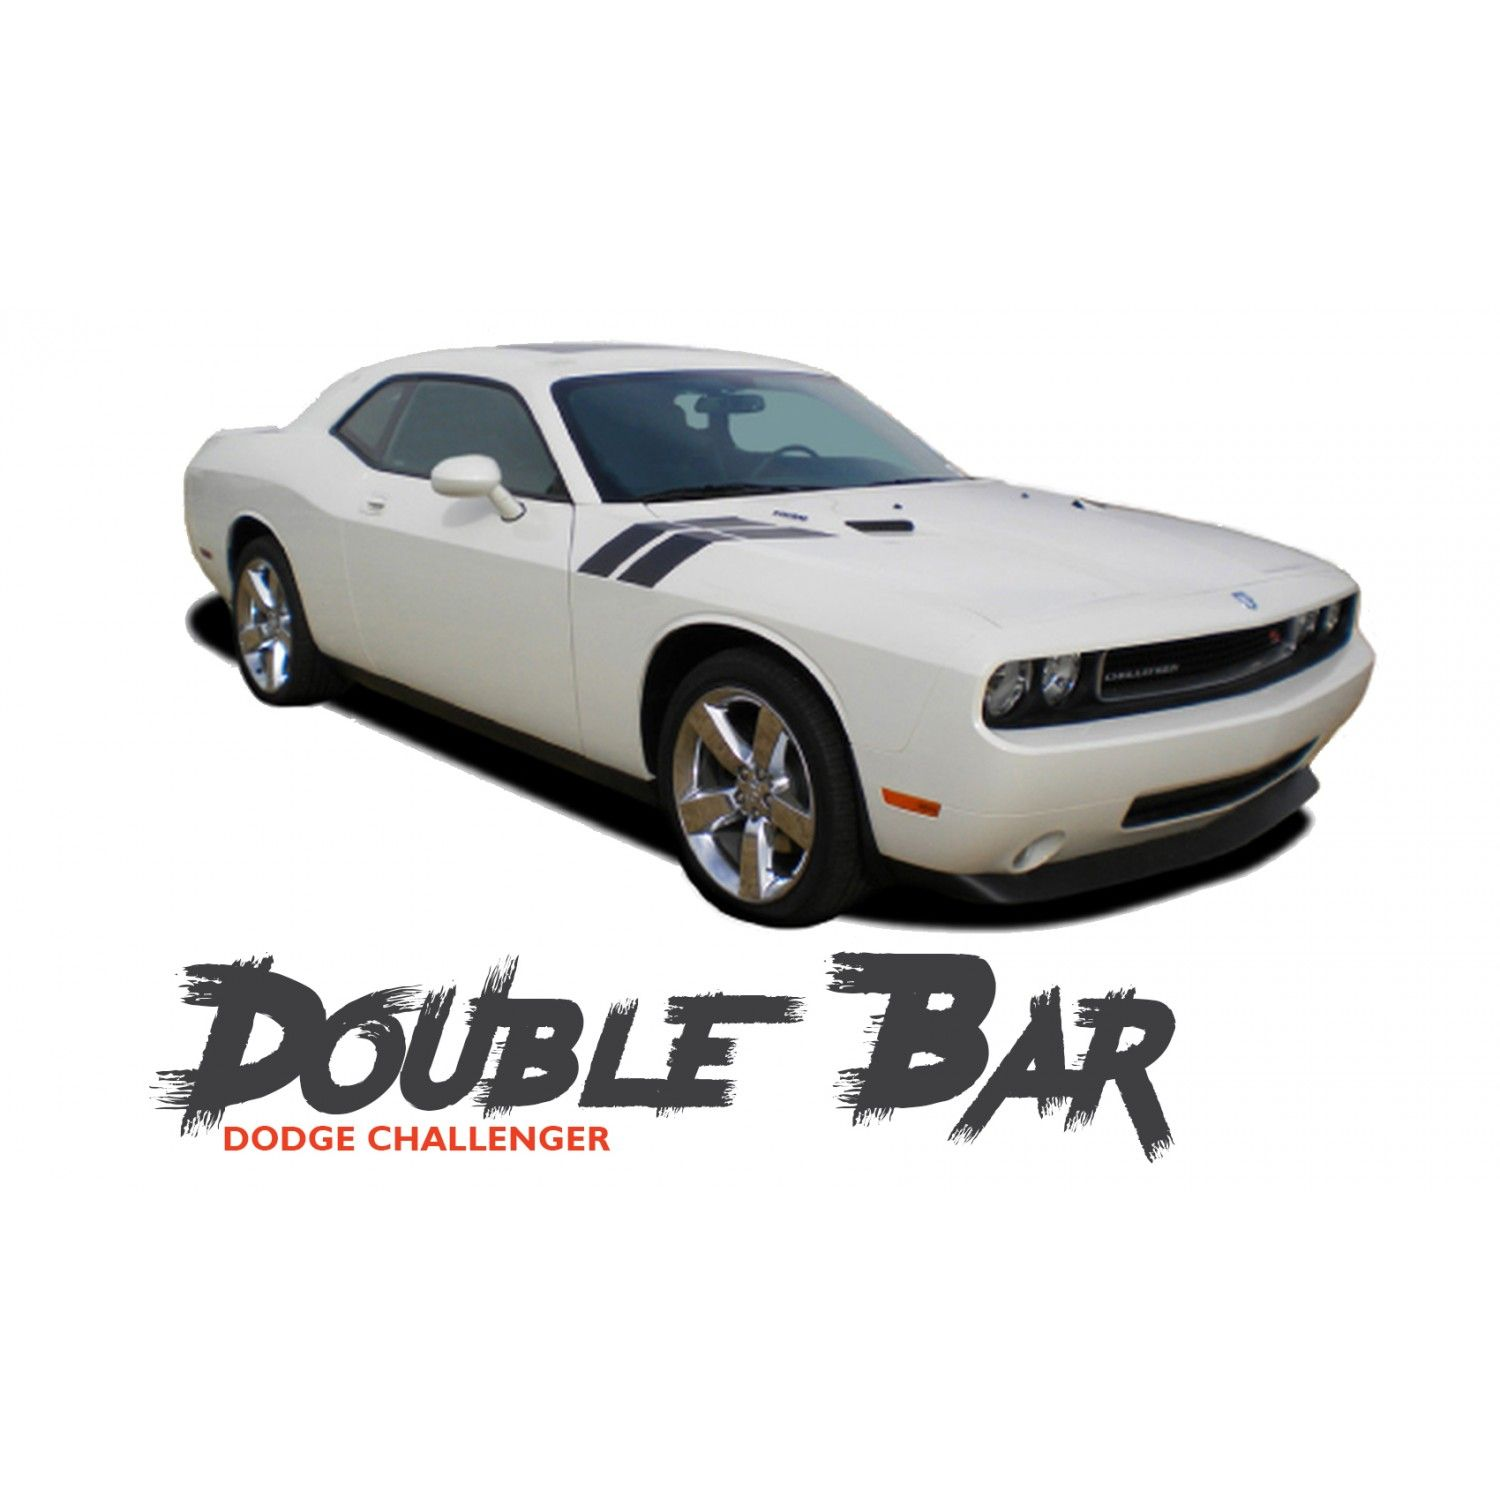 Dodge challenger double bar hood fender stripes hash slash vinyl graphic decals stripes 2010 2011 2012